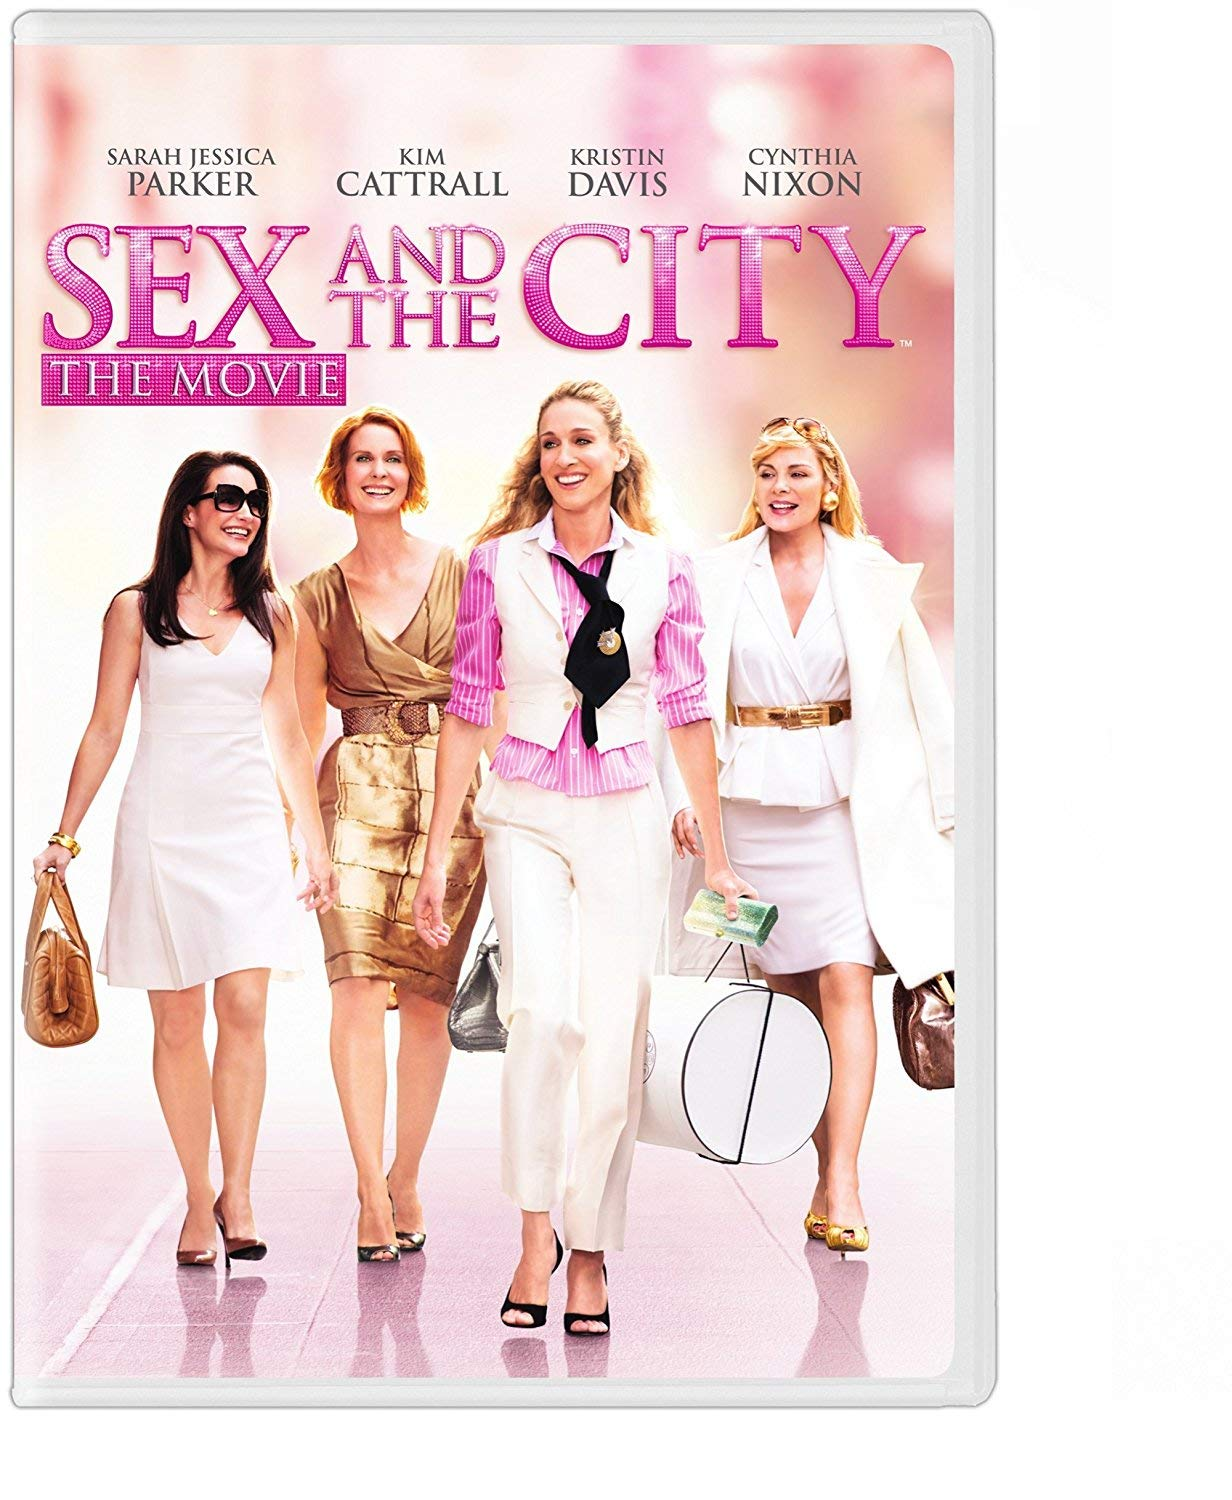 Sex and the city new movie